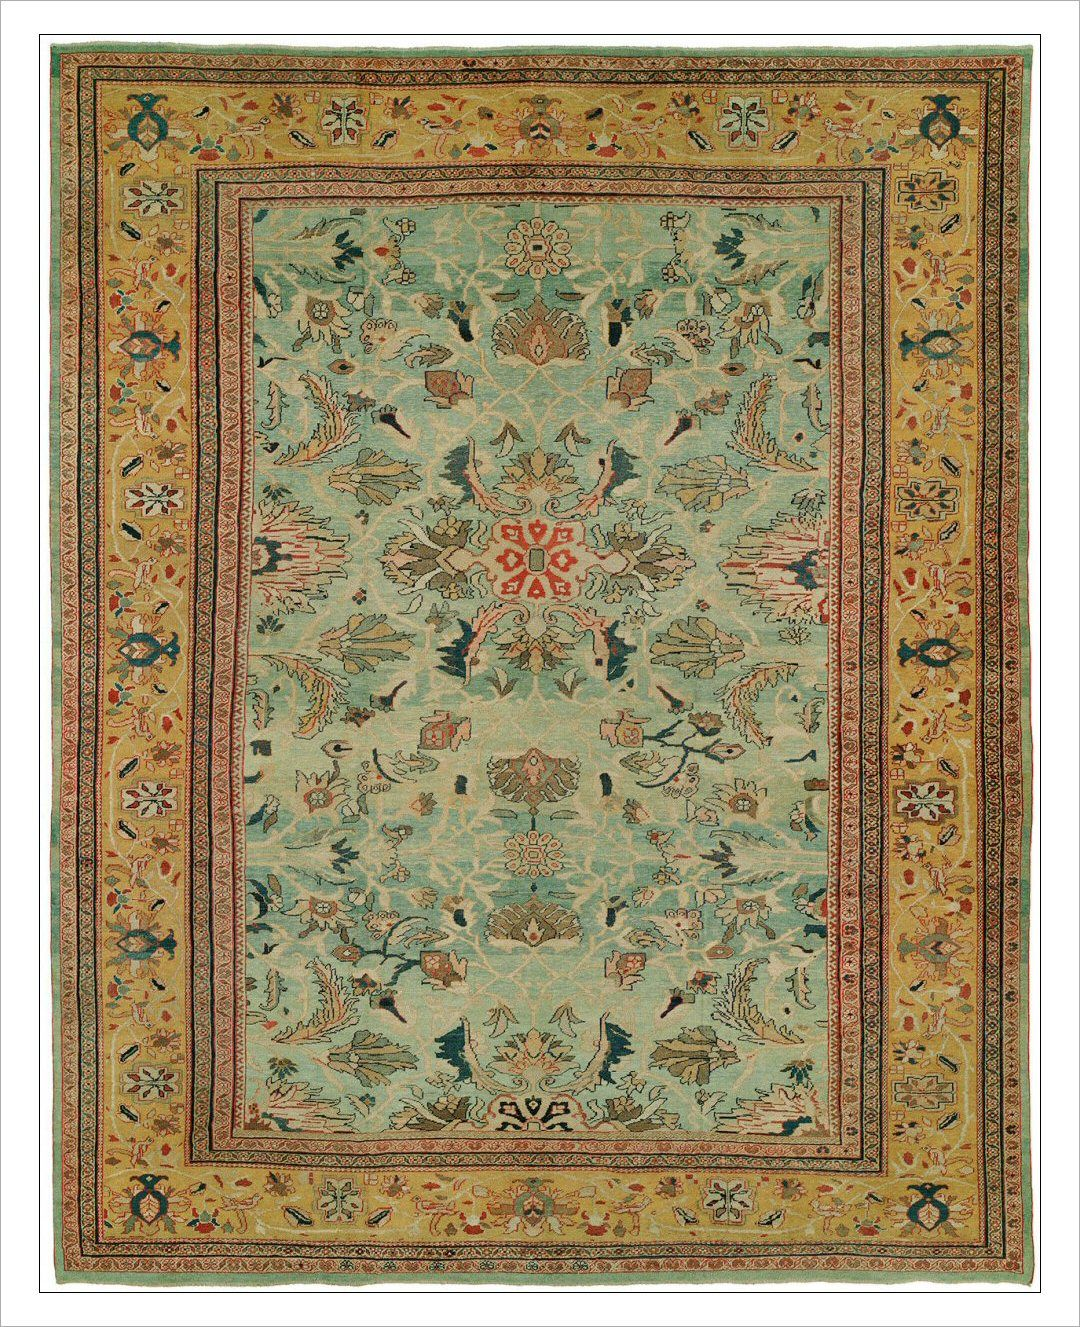 Rugs R Us Online A Division Of J D Oriental Rugs Co